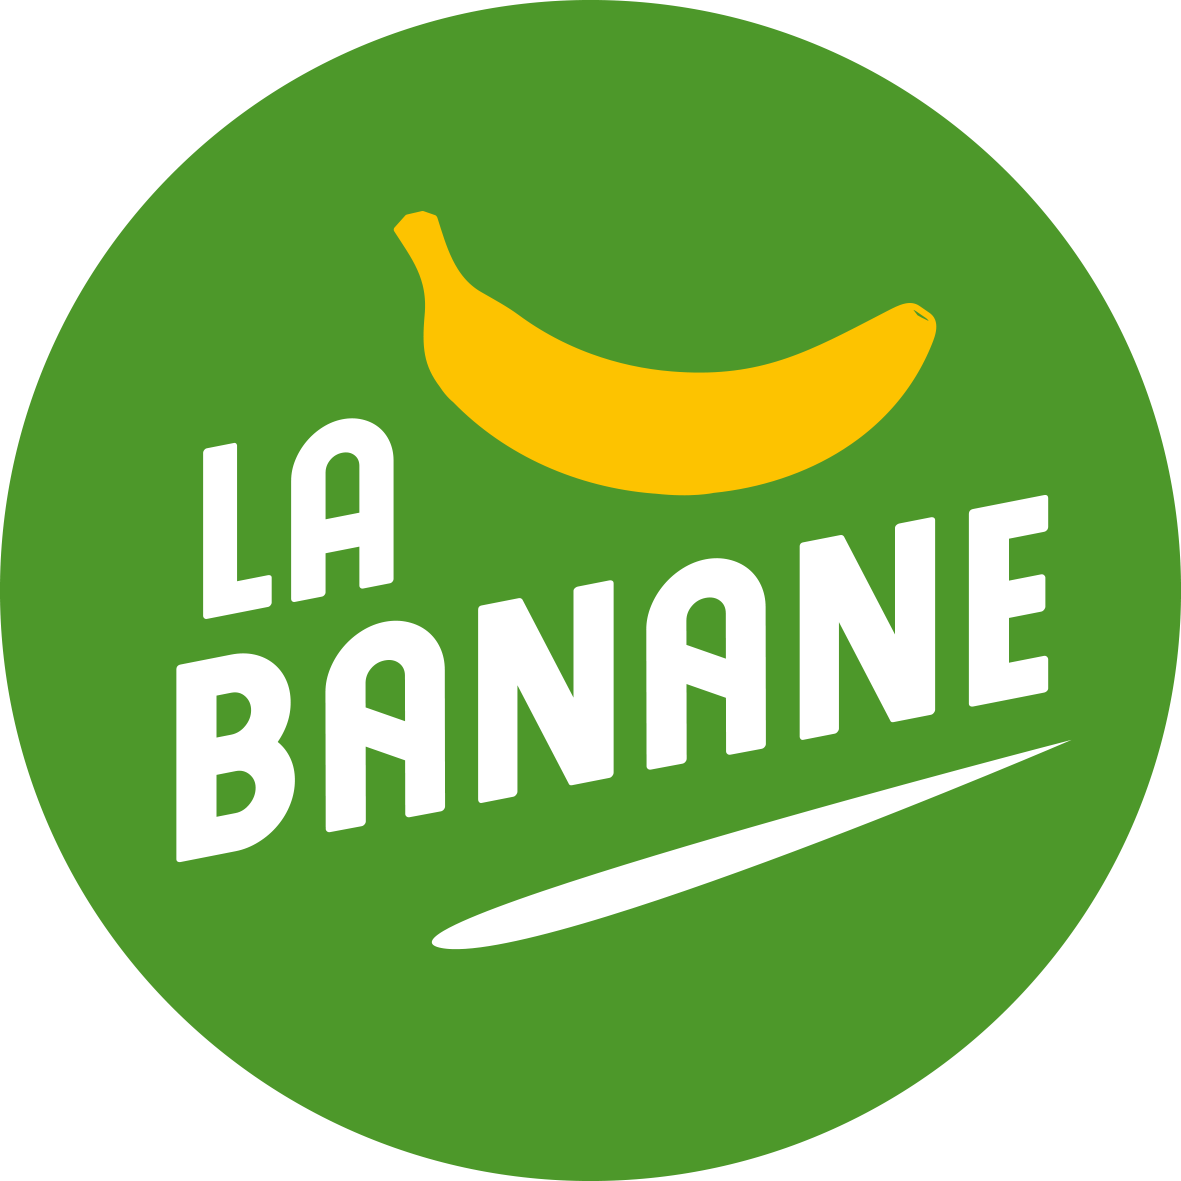 #TOUSBANANAMANIACS